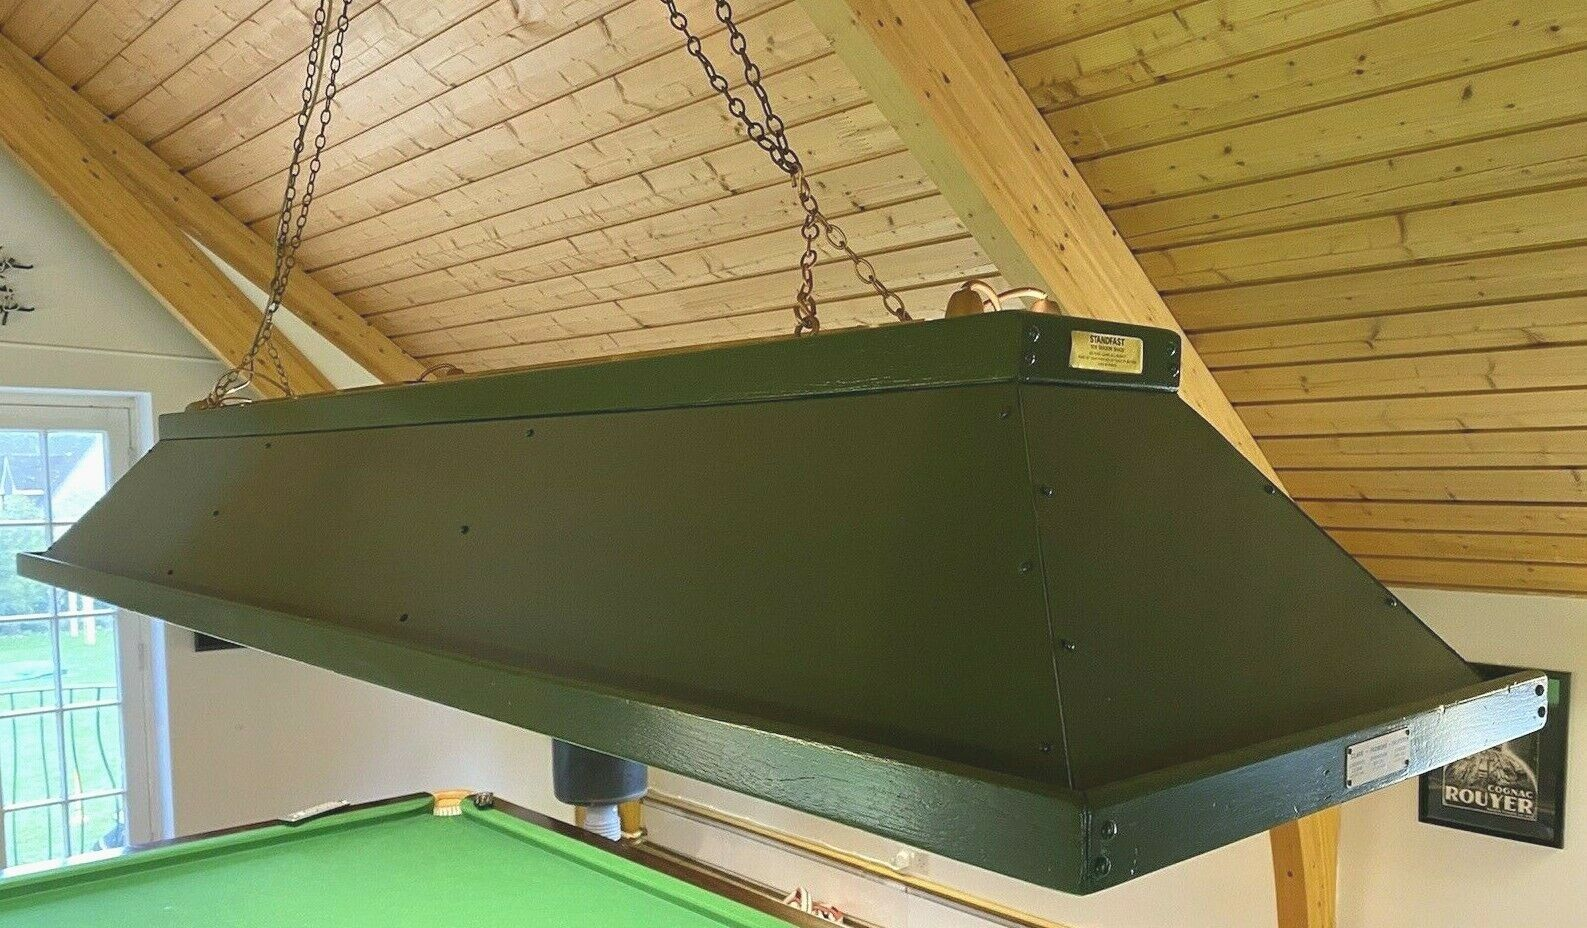 Standfast Snooker Table Light